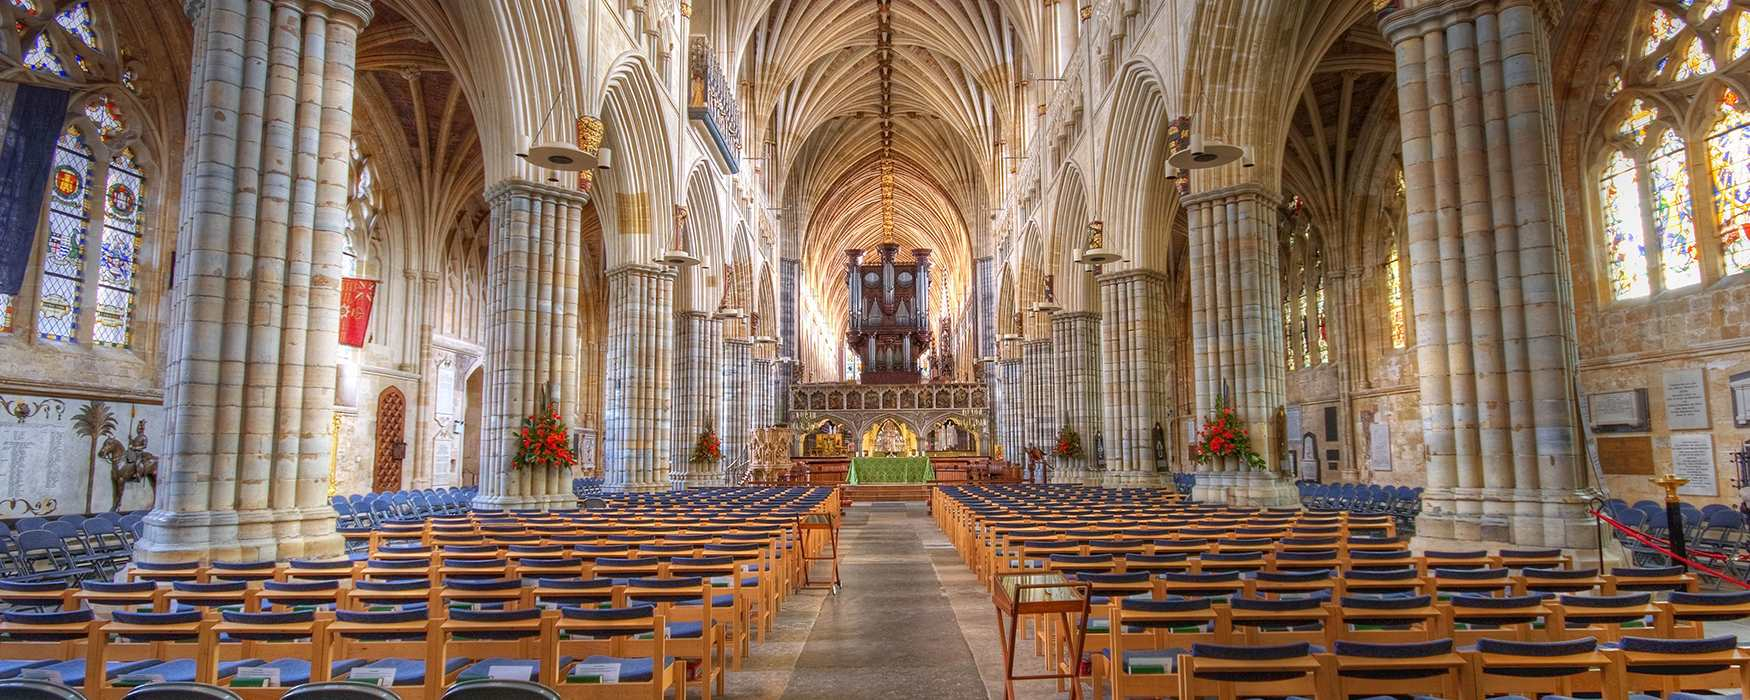 Internal of the Exeter Cathedral